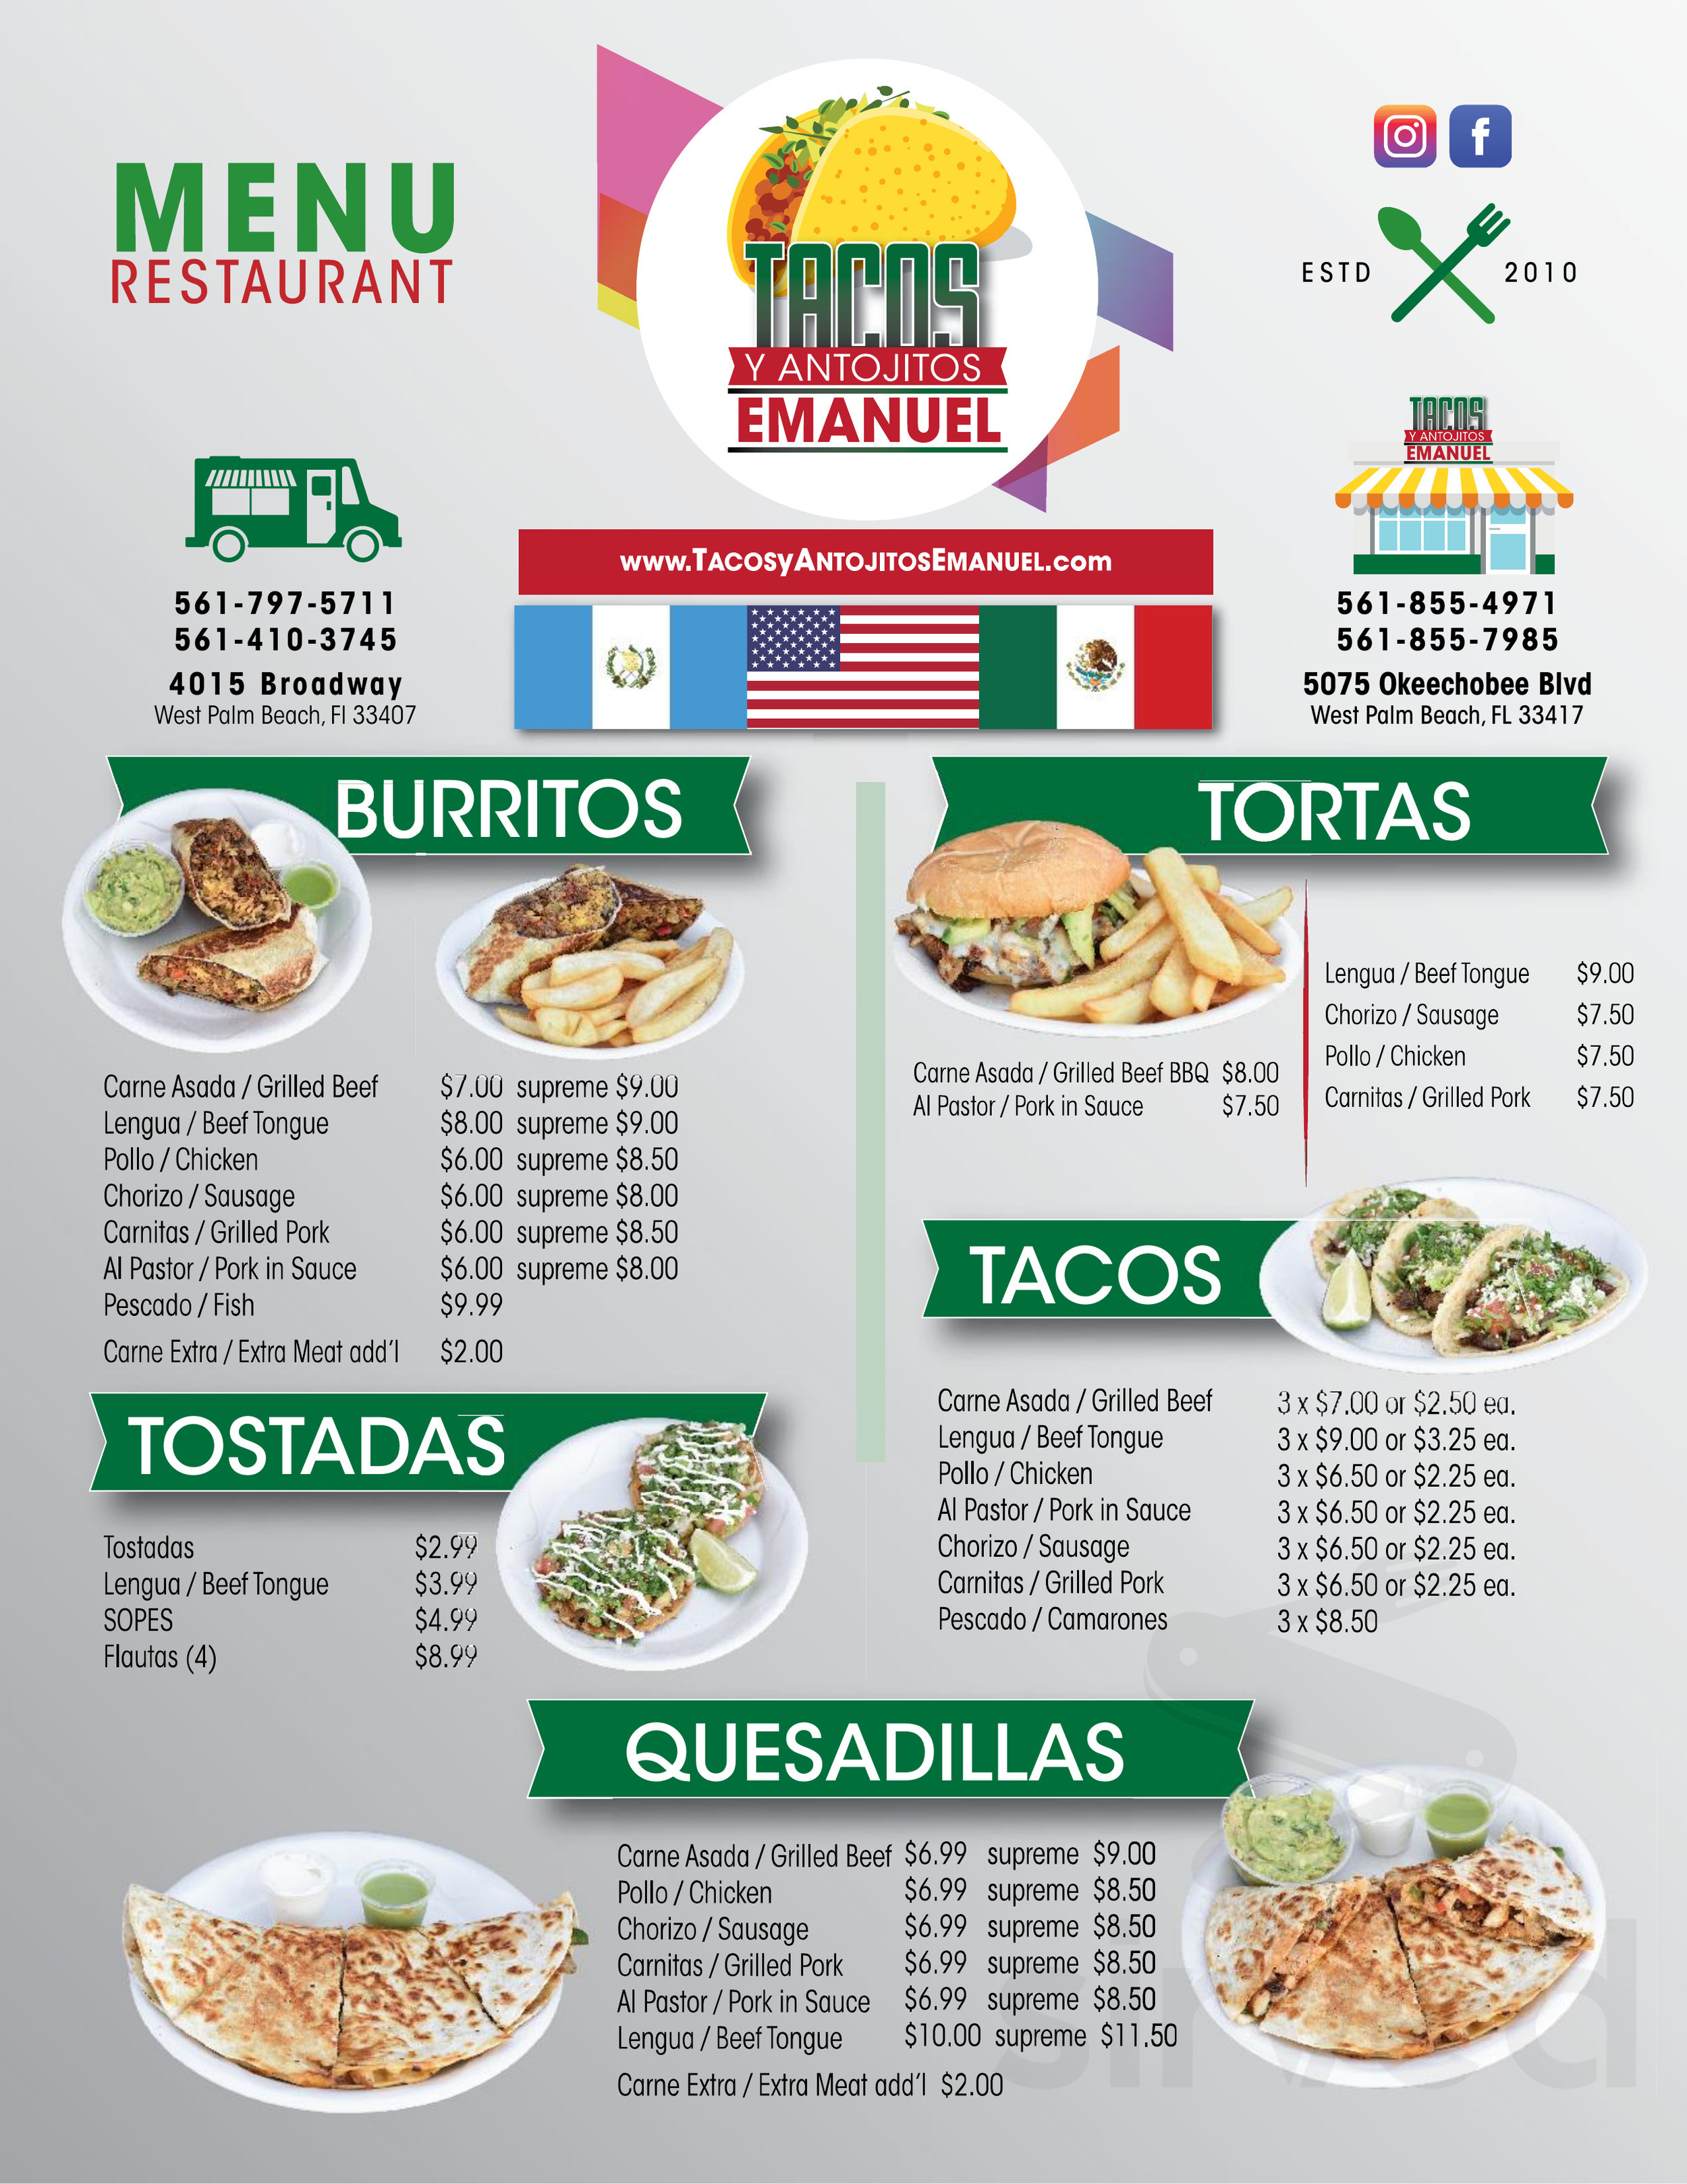 Menu For Tacos Y Antojitos Emanuel Restaurant In West Palm